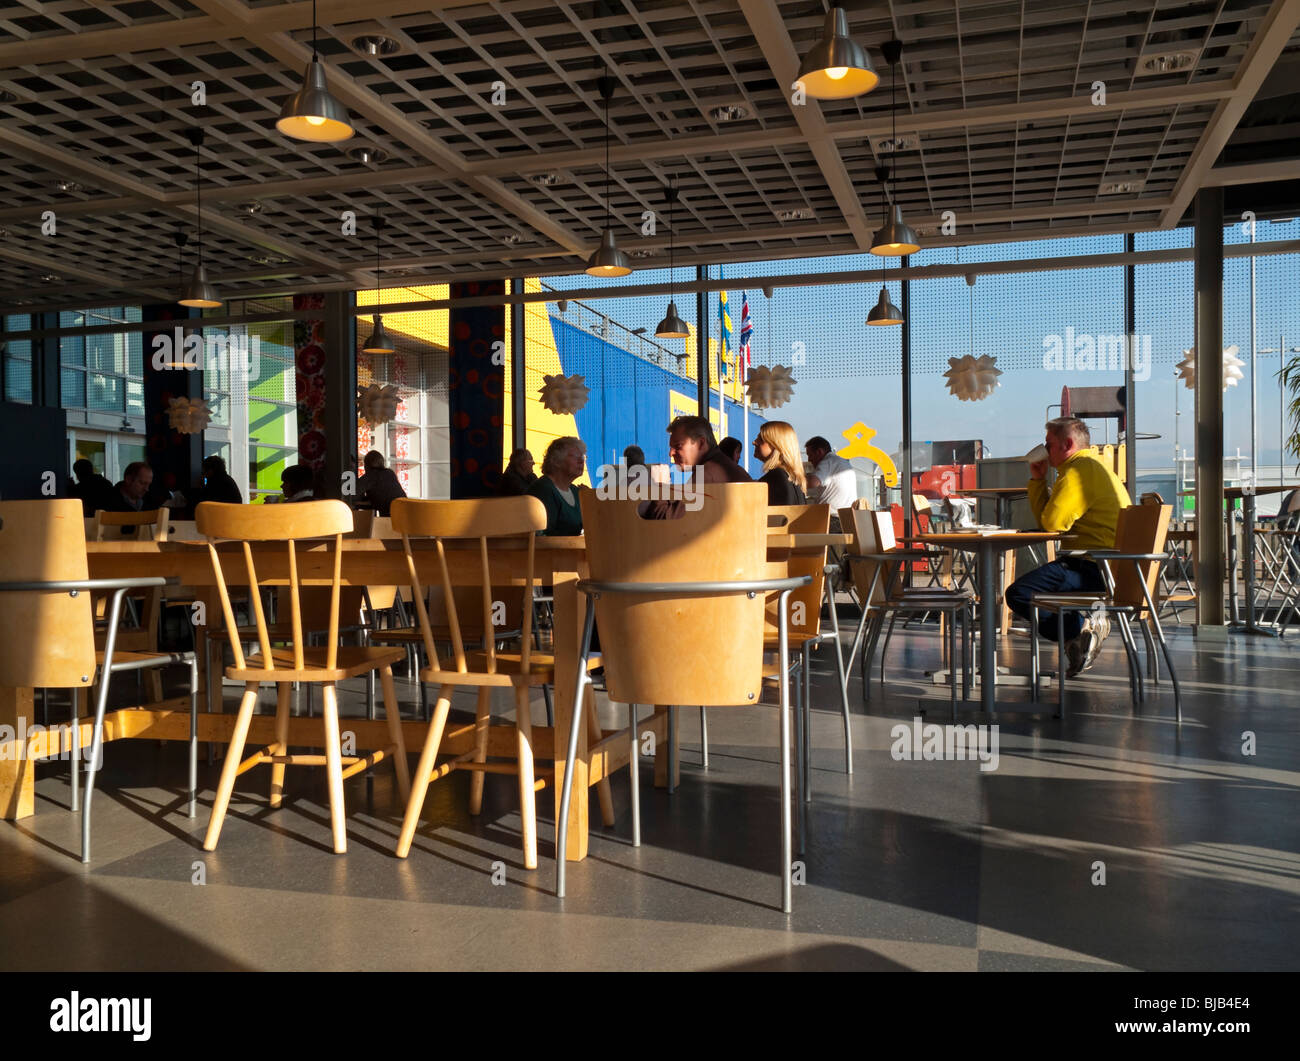 interior of ikea cafe at giltbrook retail park near nottingham stock photo royalty free image. Black Bedroom Furniture Sets. Home Design Ideas